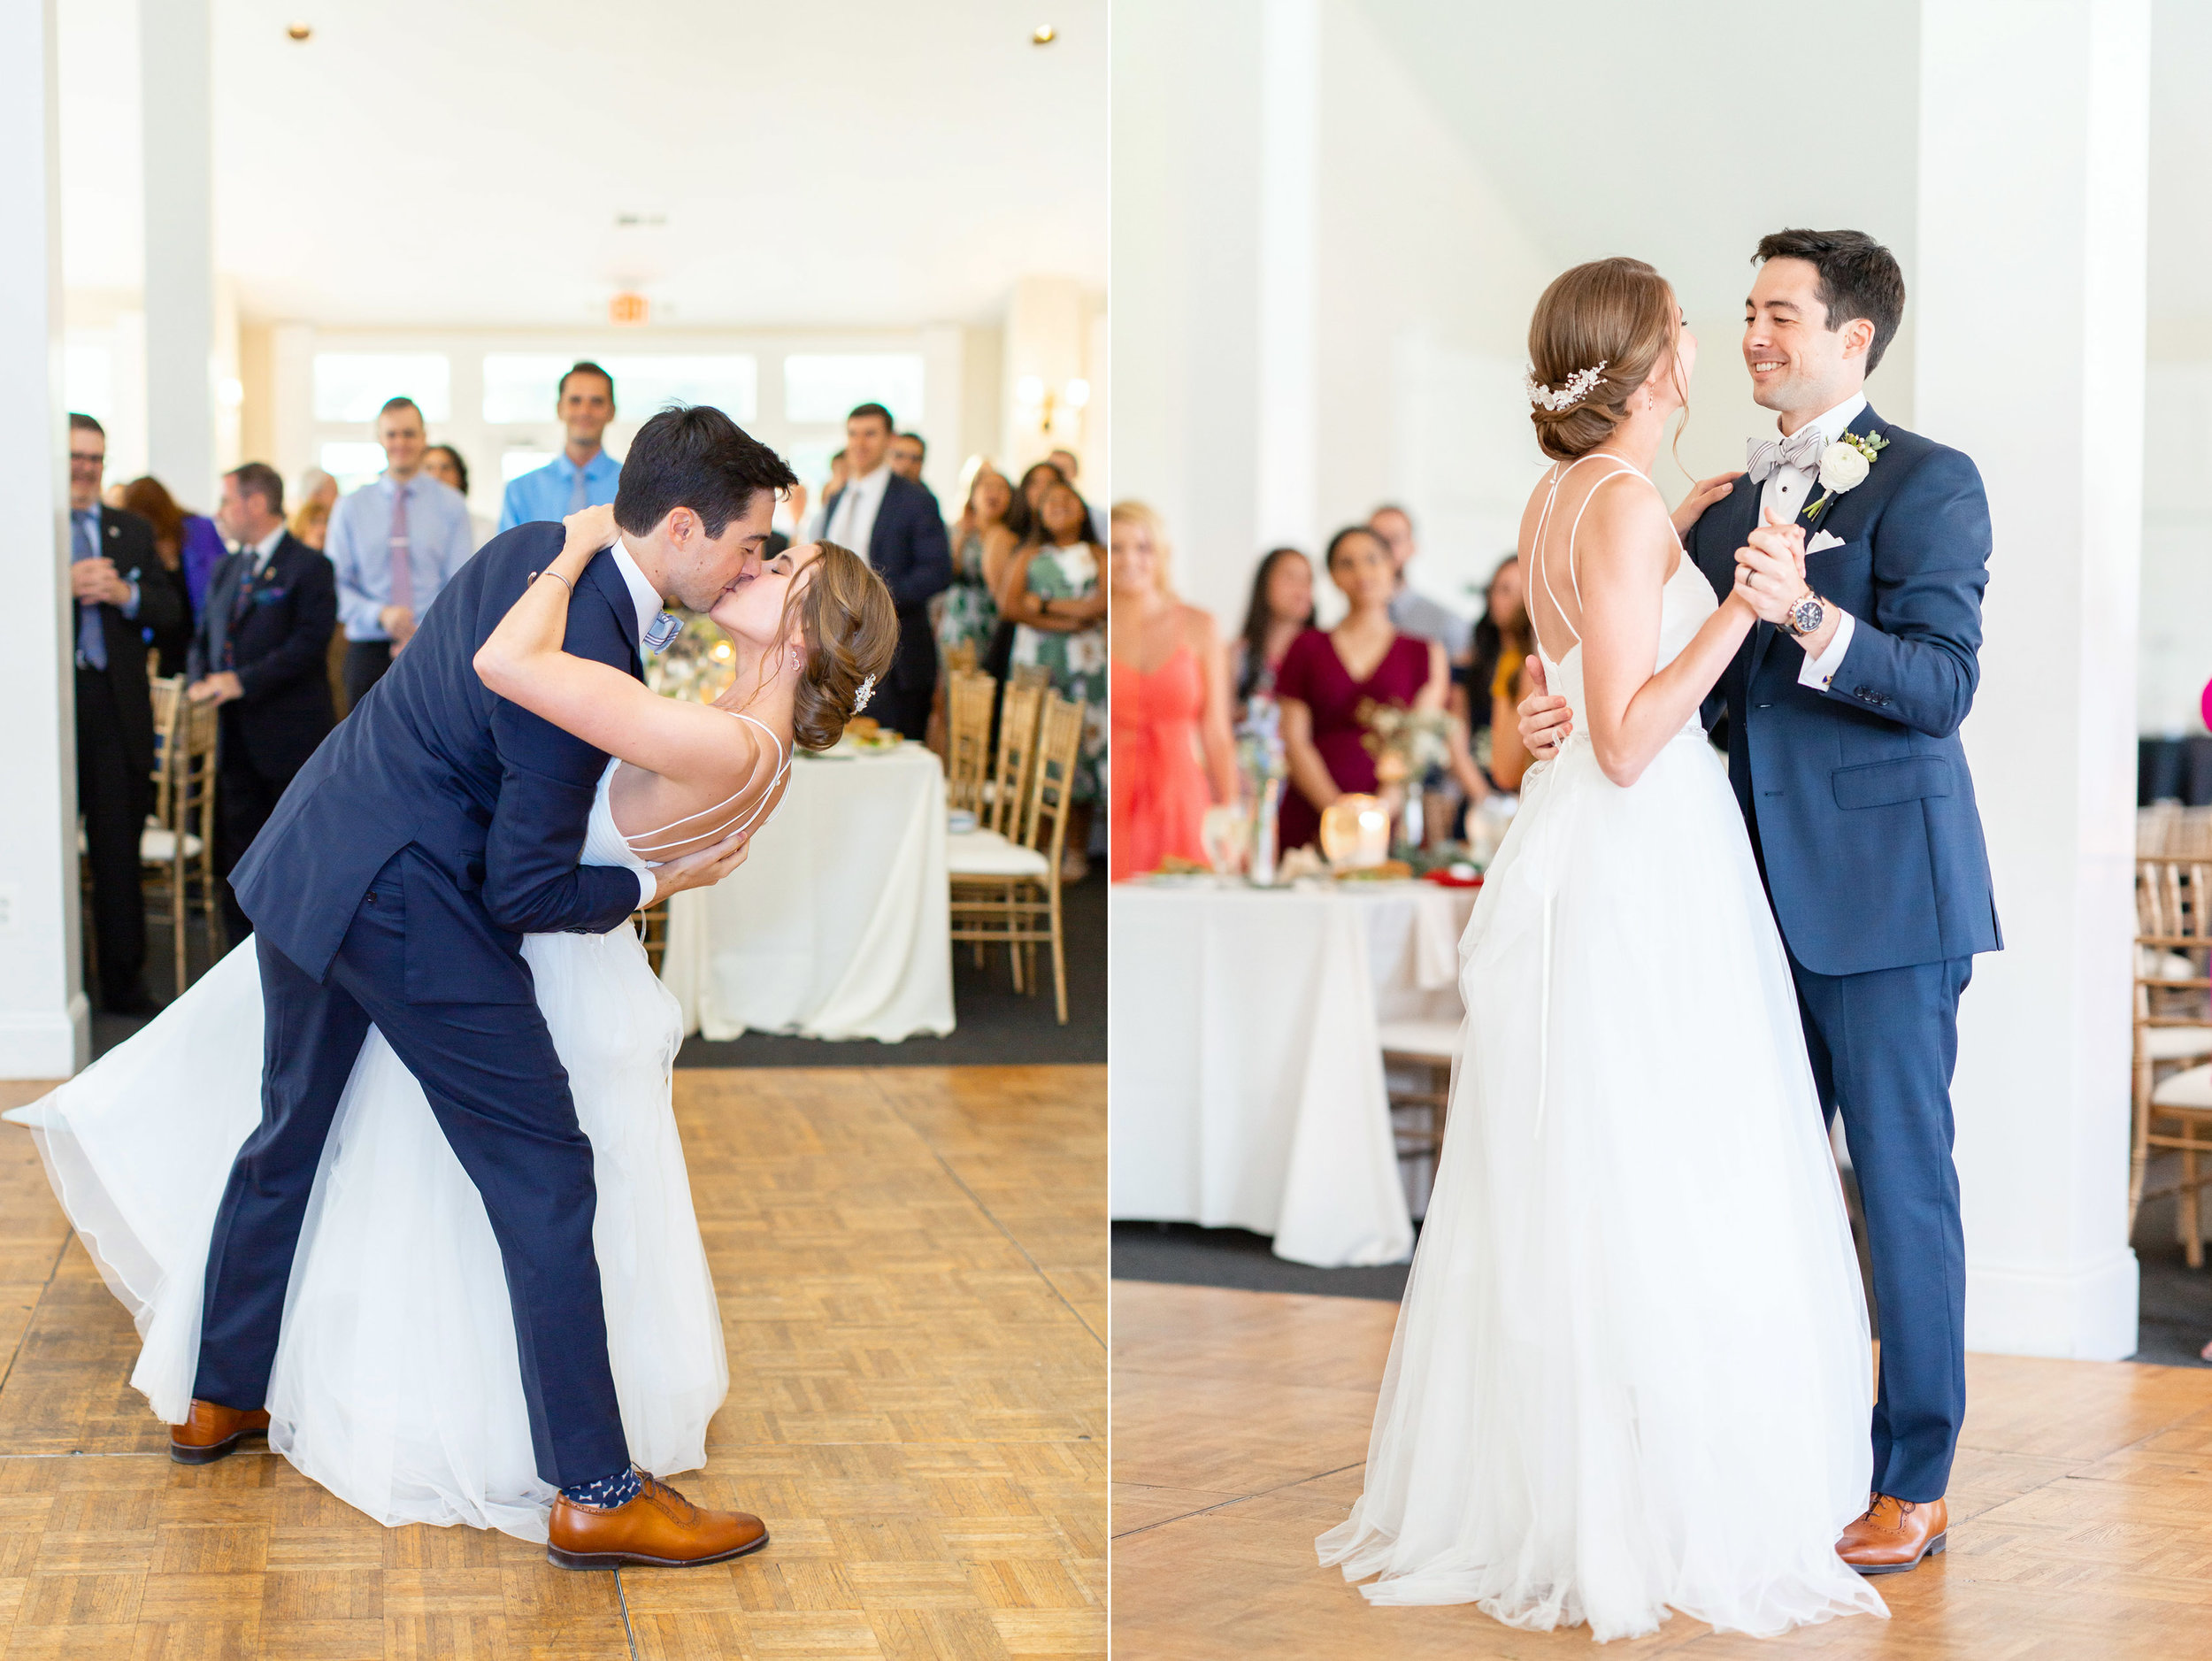 Beautiful bride and groom first dance dip and kiss during reception at Springfield Manor Winery and Distillery